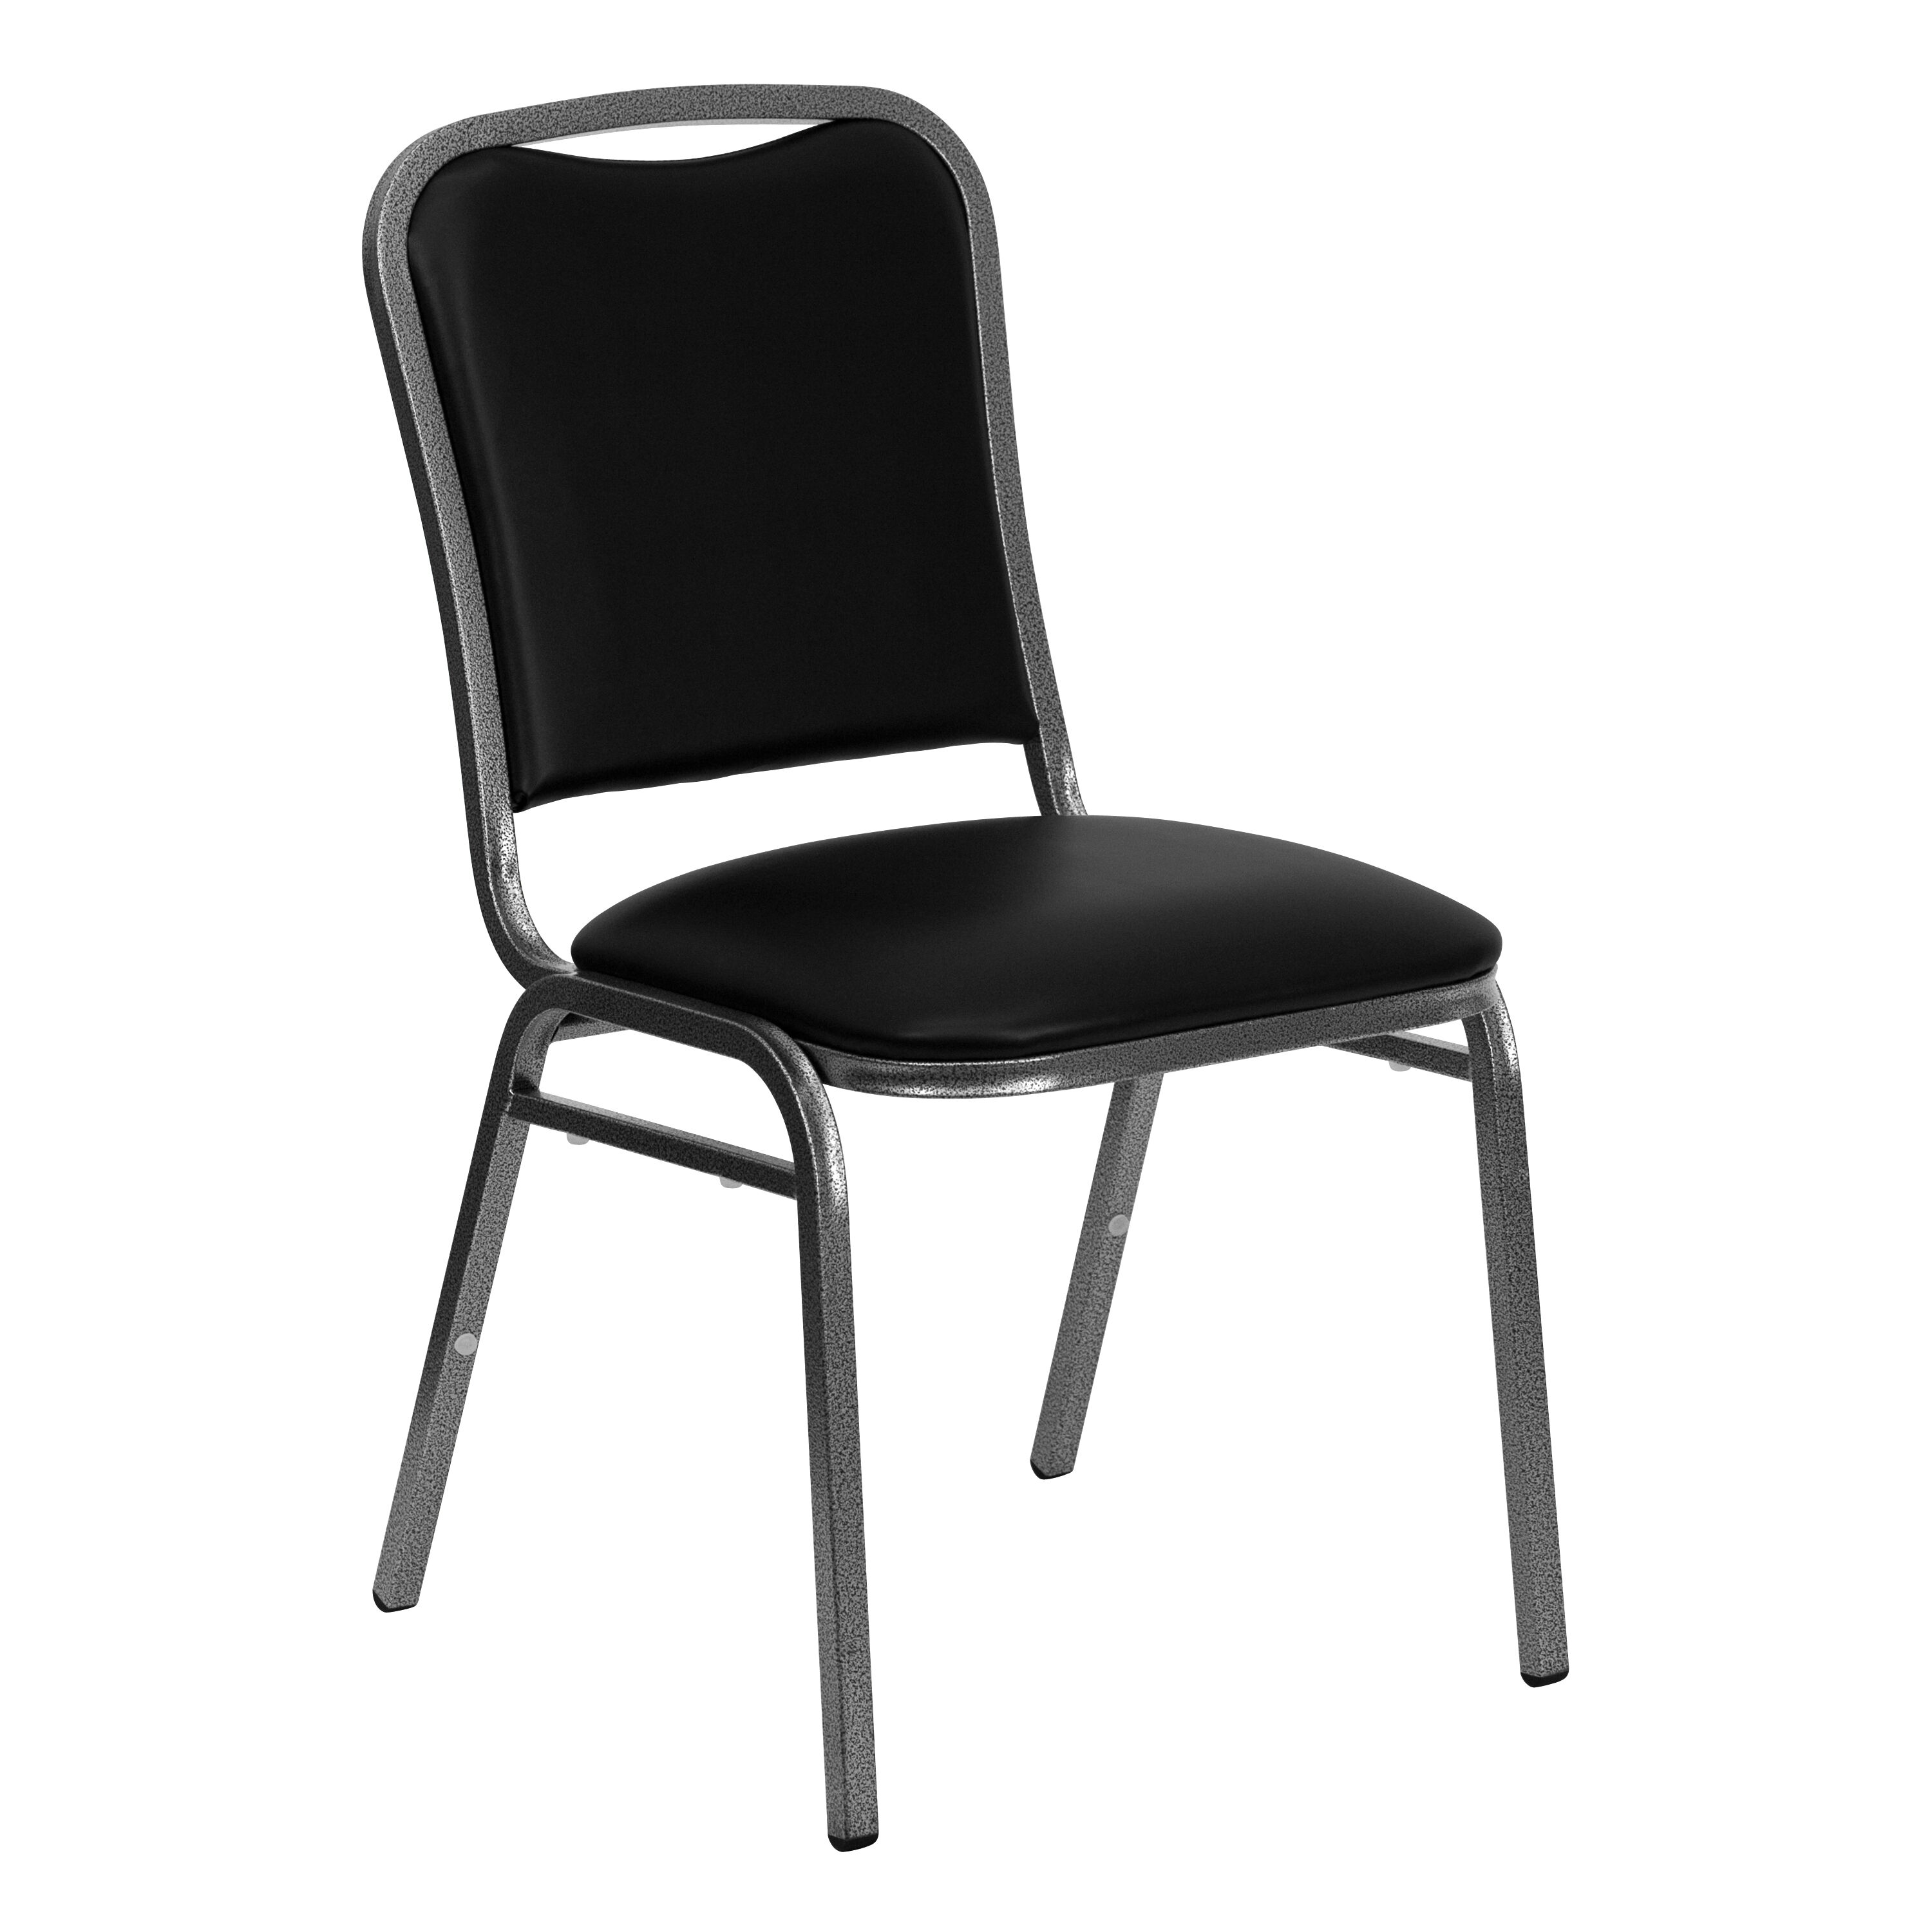 Our HERCULES Series Stacking Banquet Chair in Black Vinyl